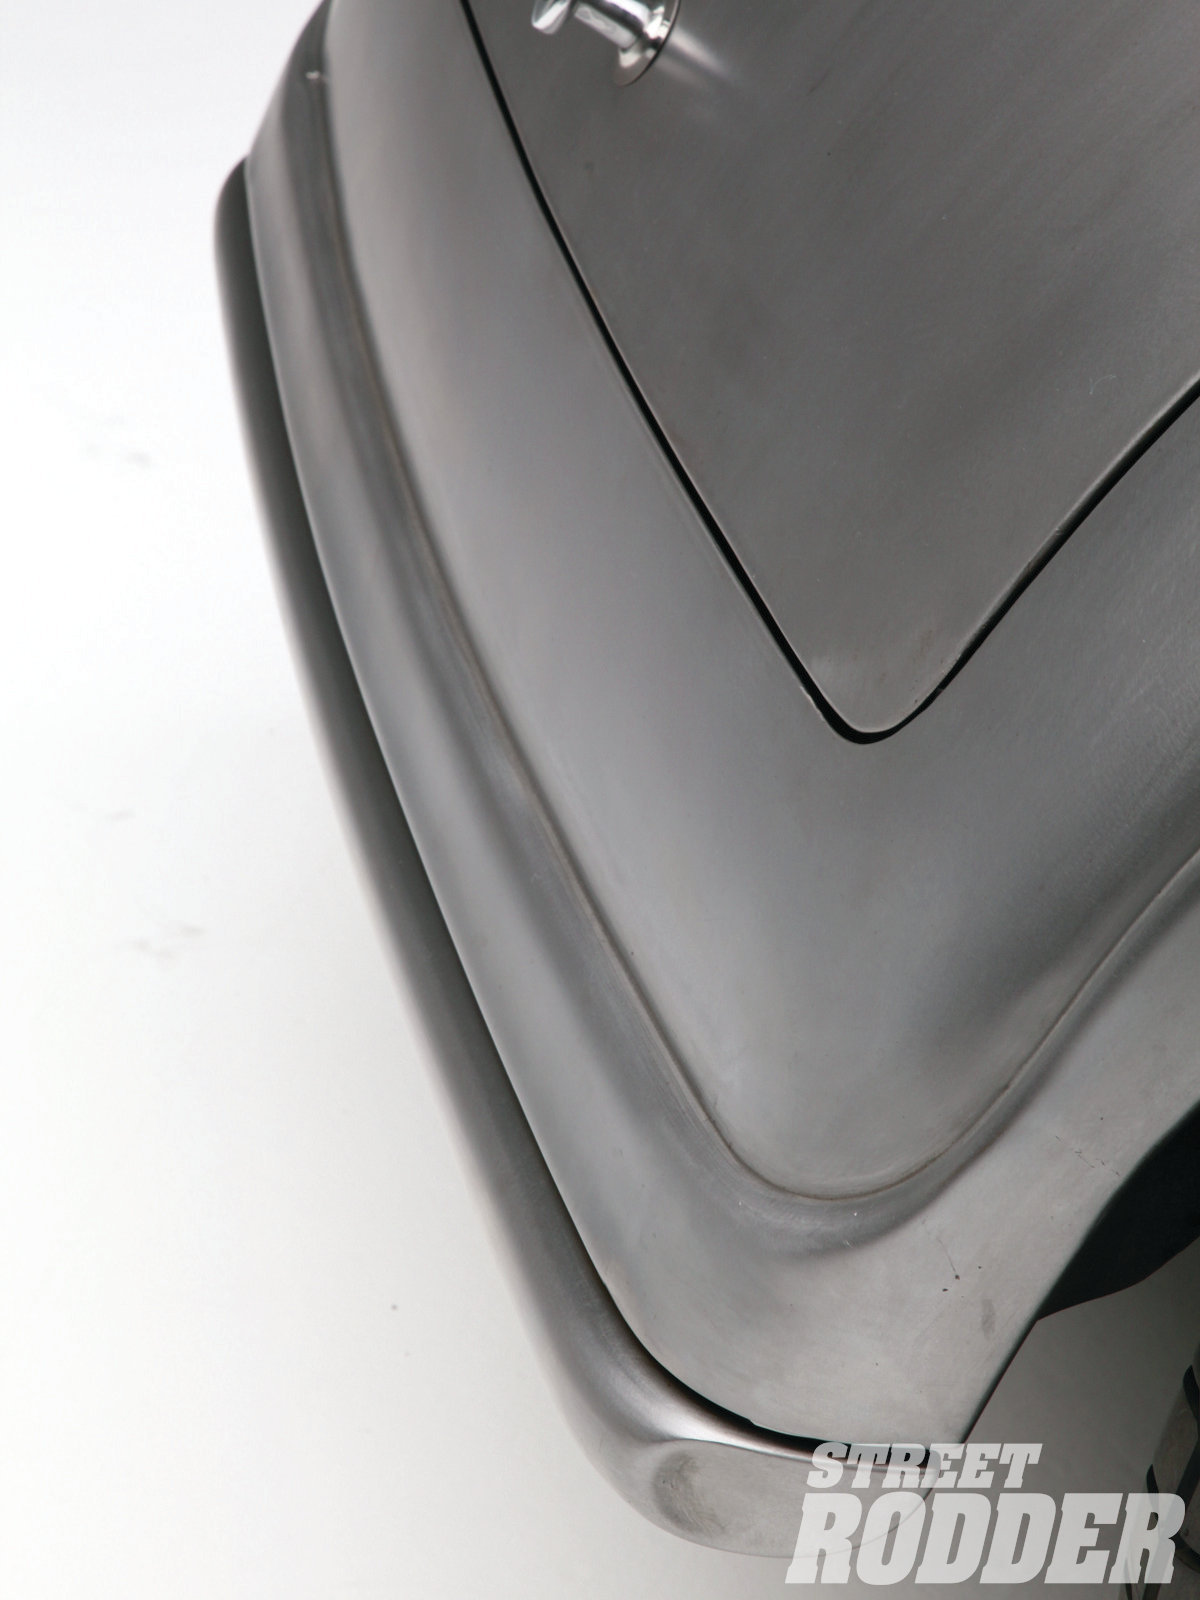 18| Another neat item on the coupe is the rear nerf bar, which tucks in close and flows in the same shape as the rear apron, giving the appearance of a roll pan.